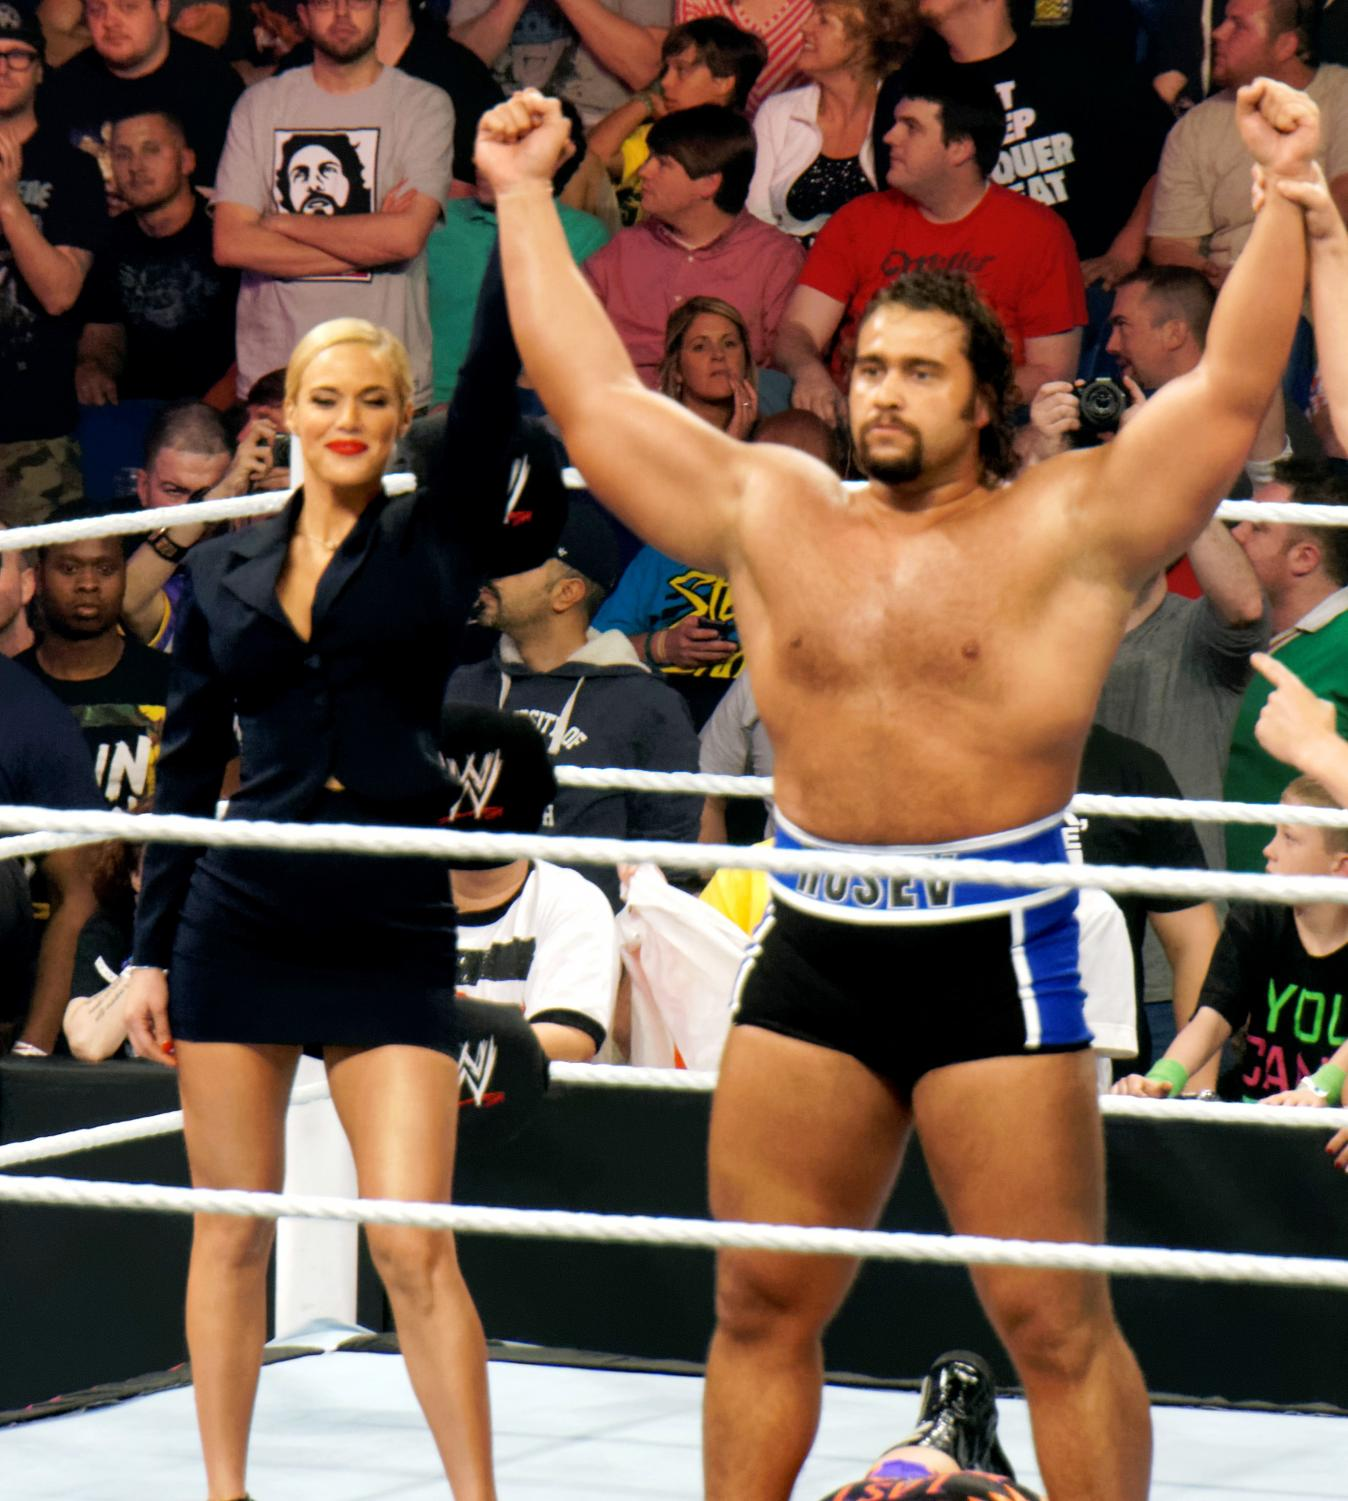 Happy Rusev Day